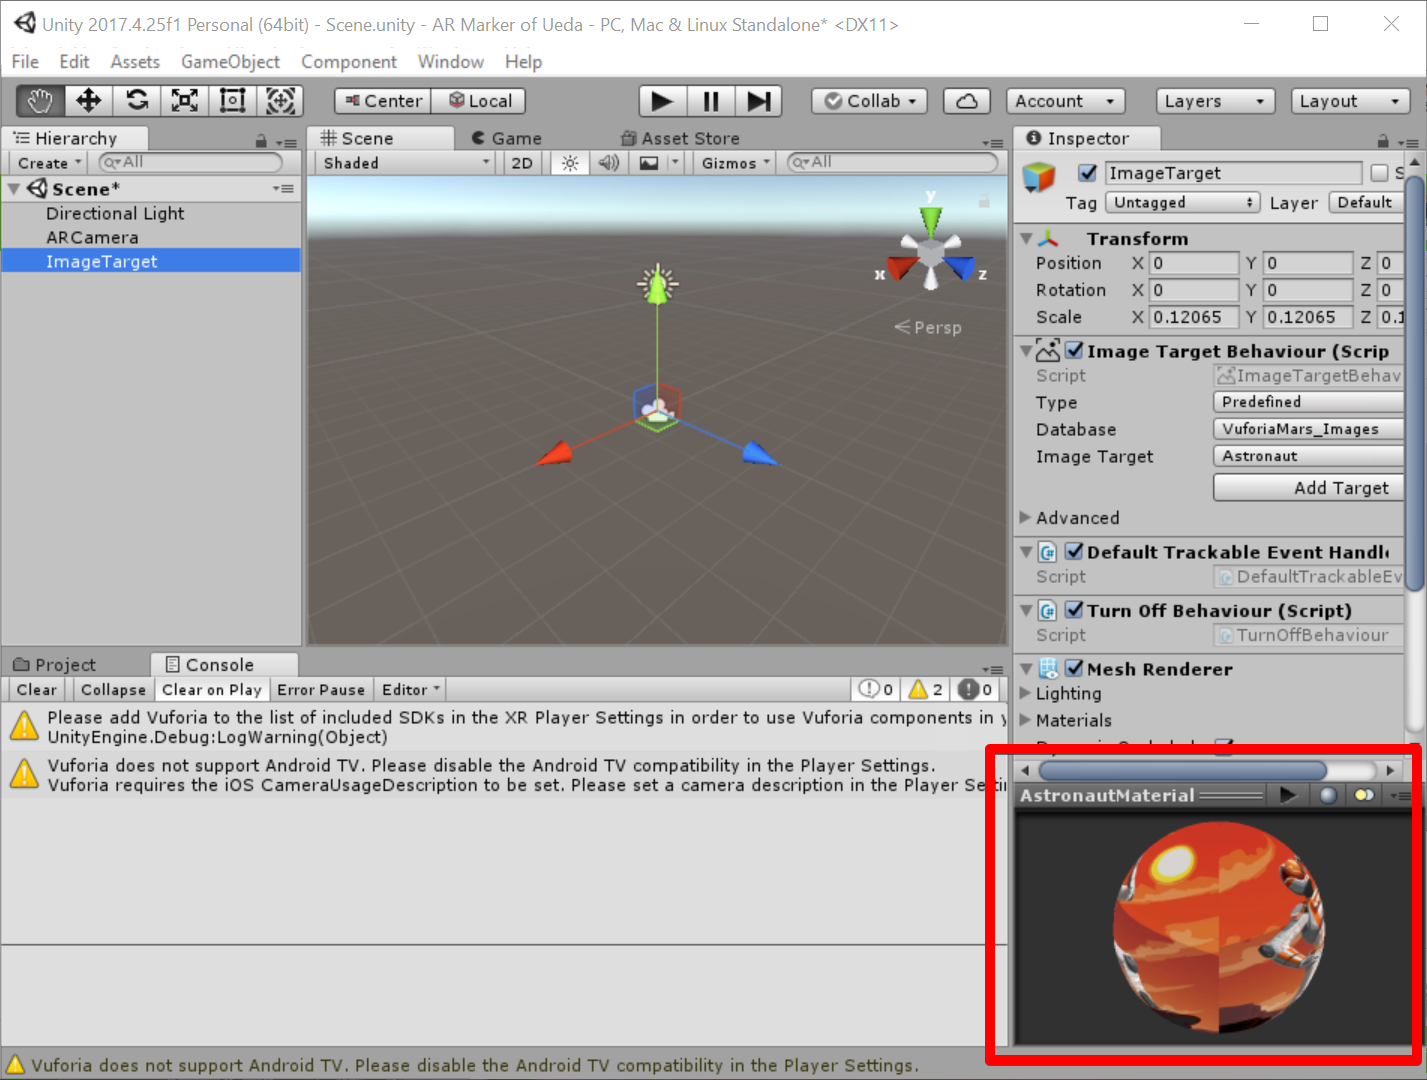 Unity 2017.4.25f1 Personal (64bit) - Scene.unity - AR Marker of Ueda - PC, Mac & Linux Standalone_ _DX11_ 2019-07-05 07.45.06.png